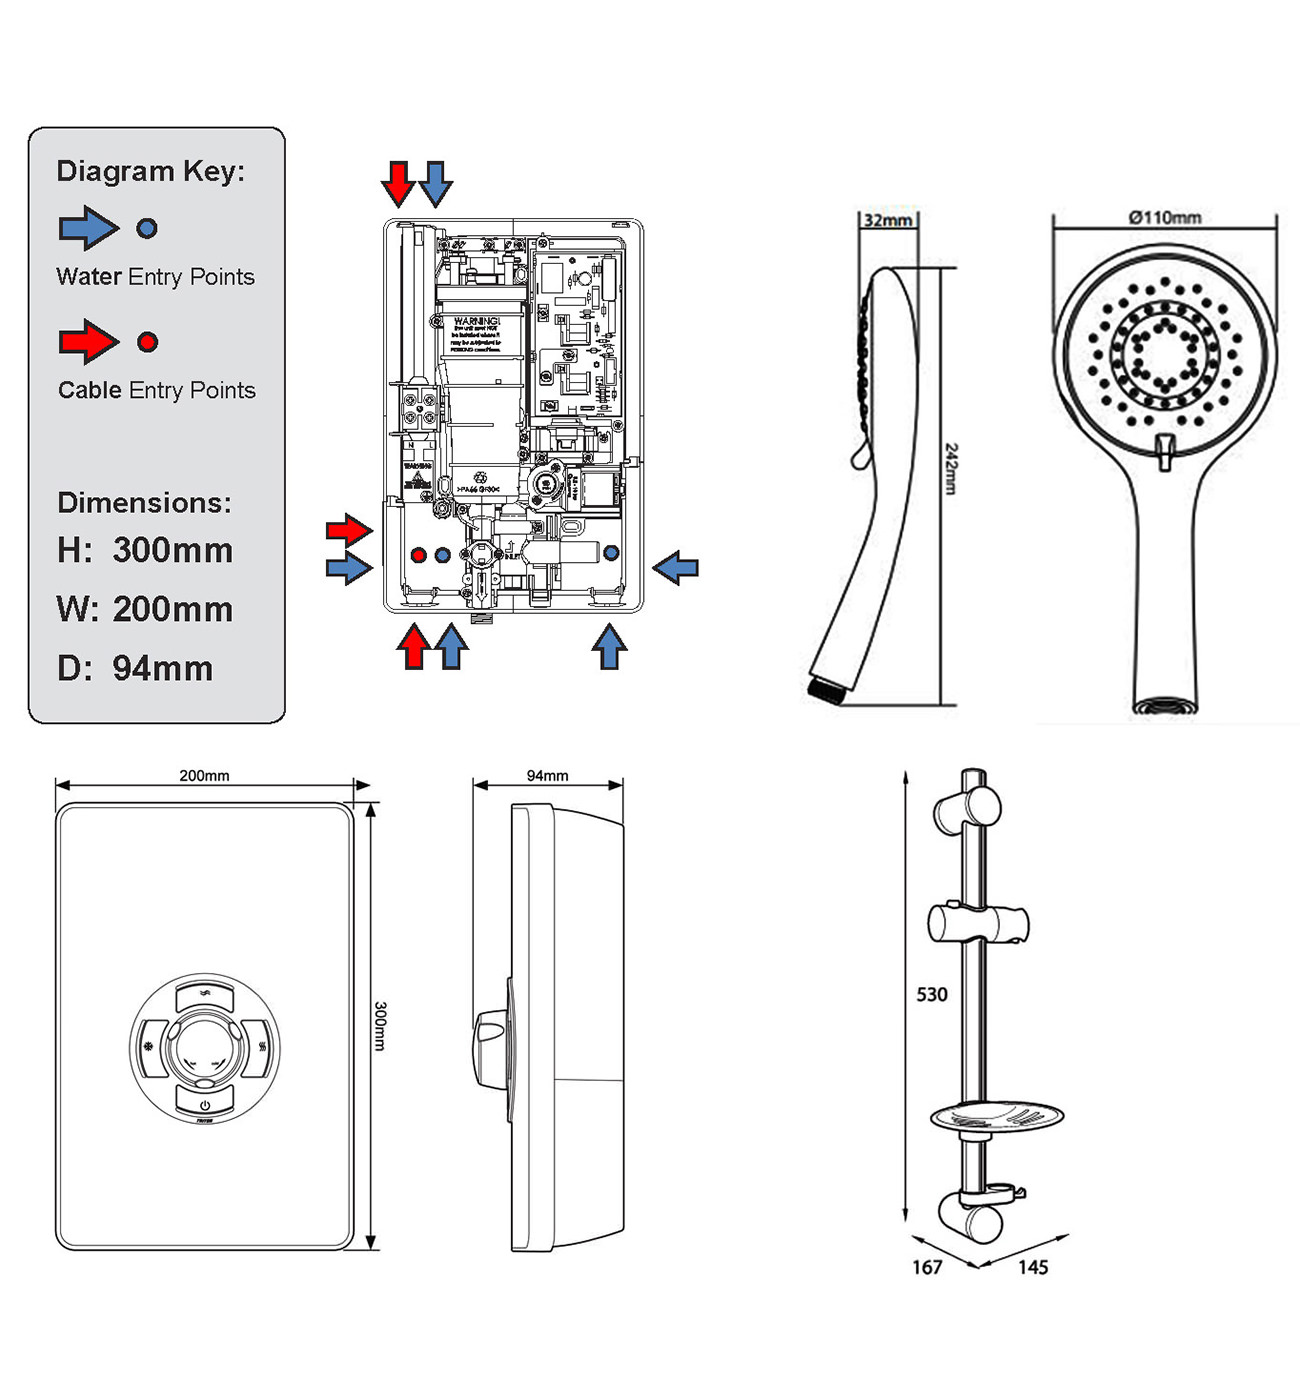 Wiring Diagram 200 Cm Schematics Bmw Z3 Alarm Electrical Diagrams Series And Parallel Circuits Trion